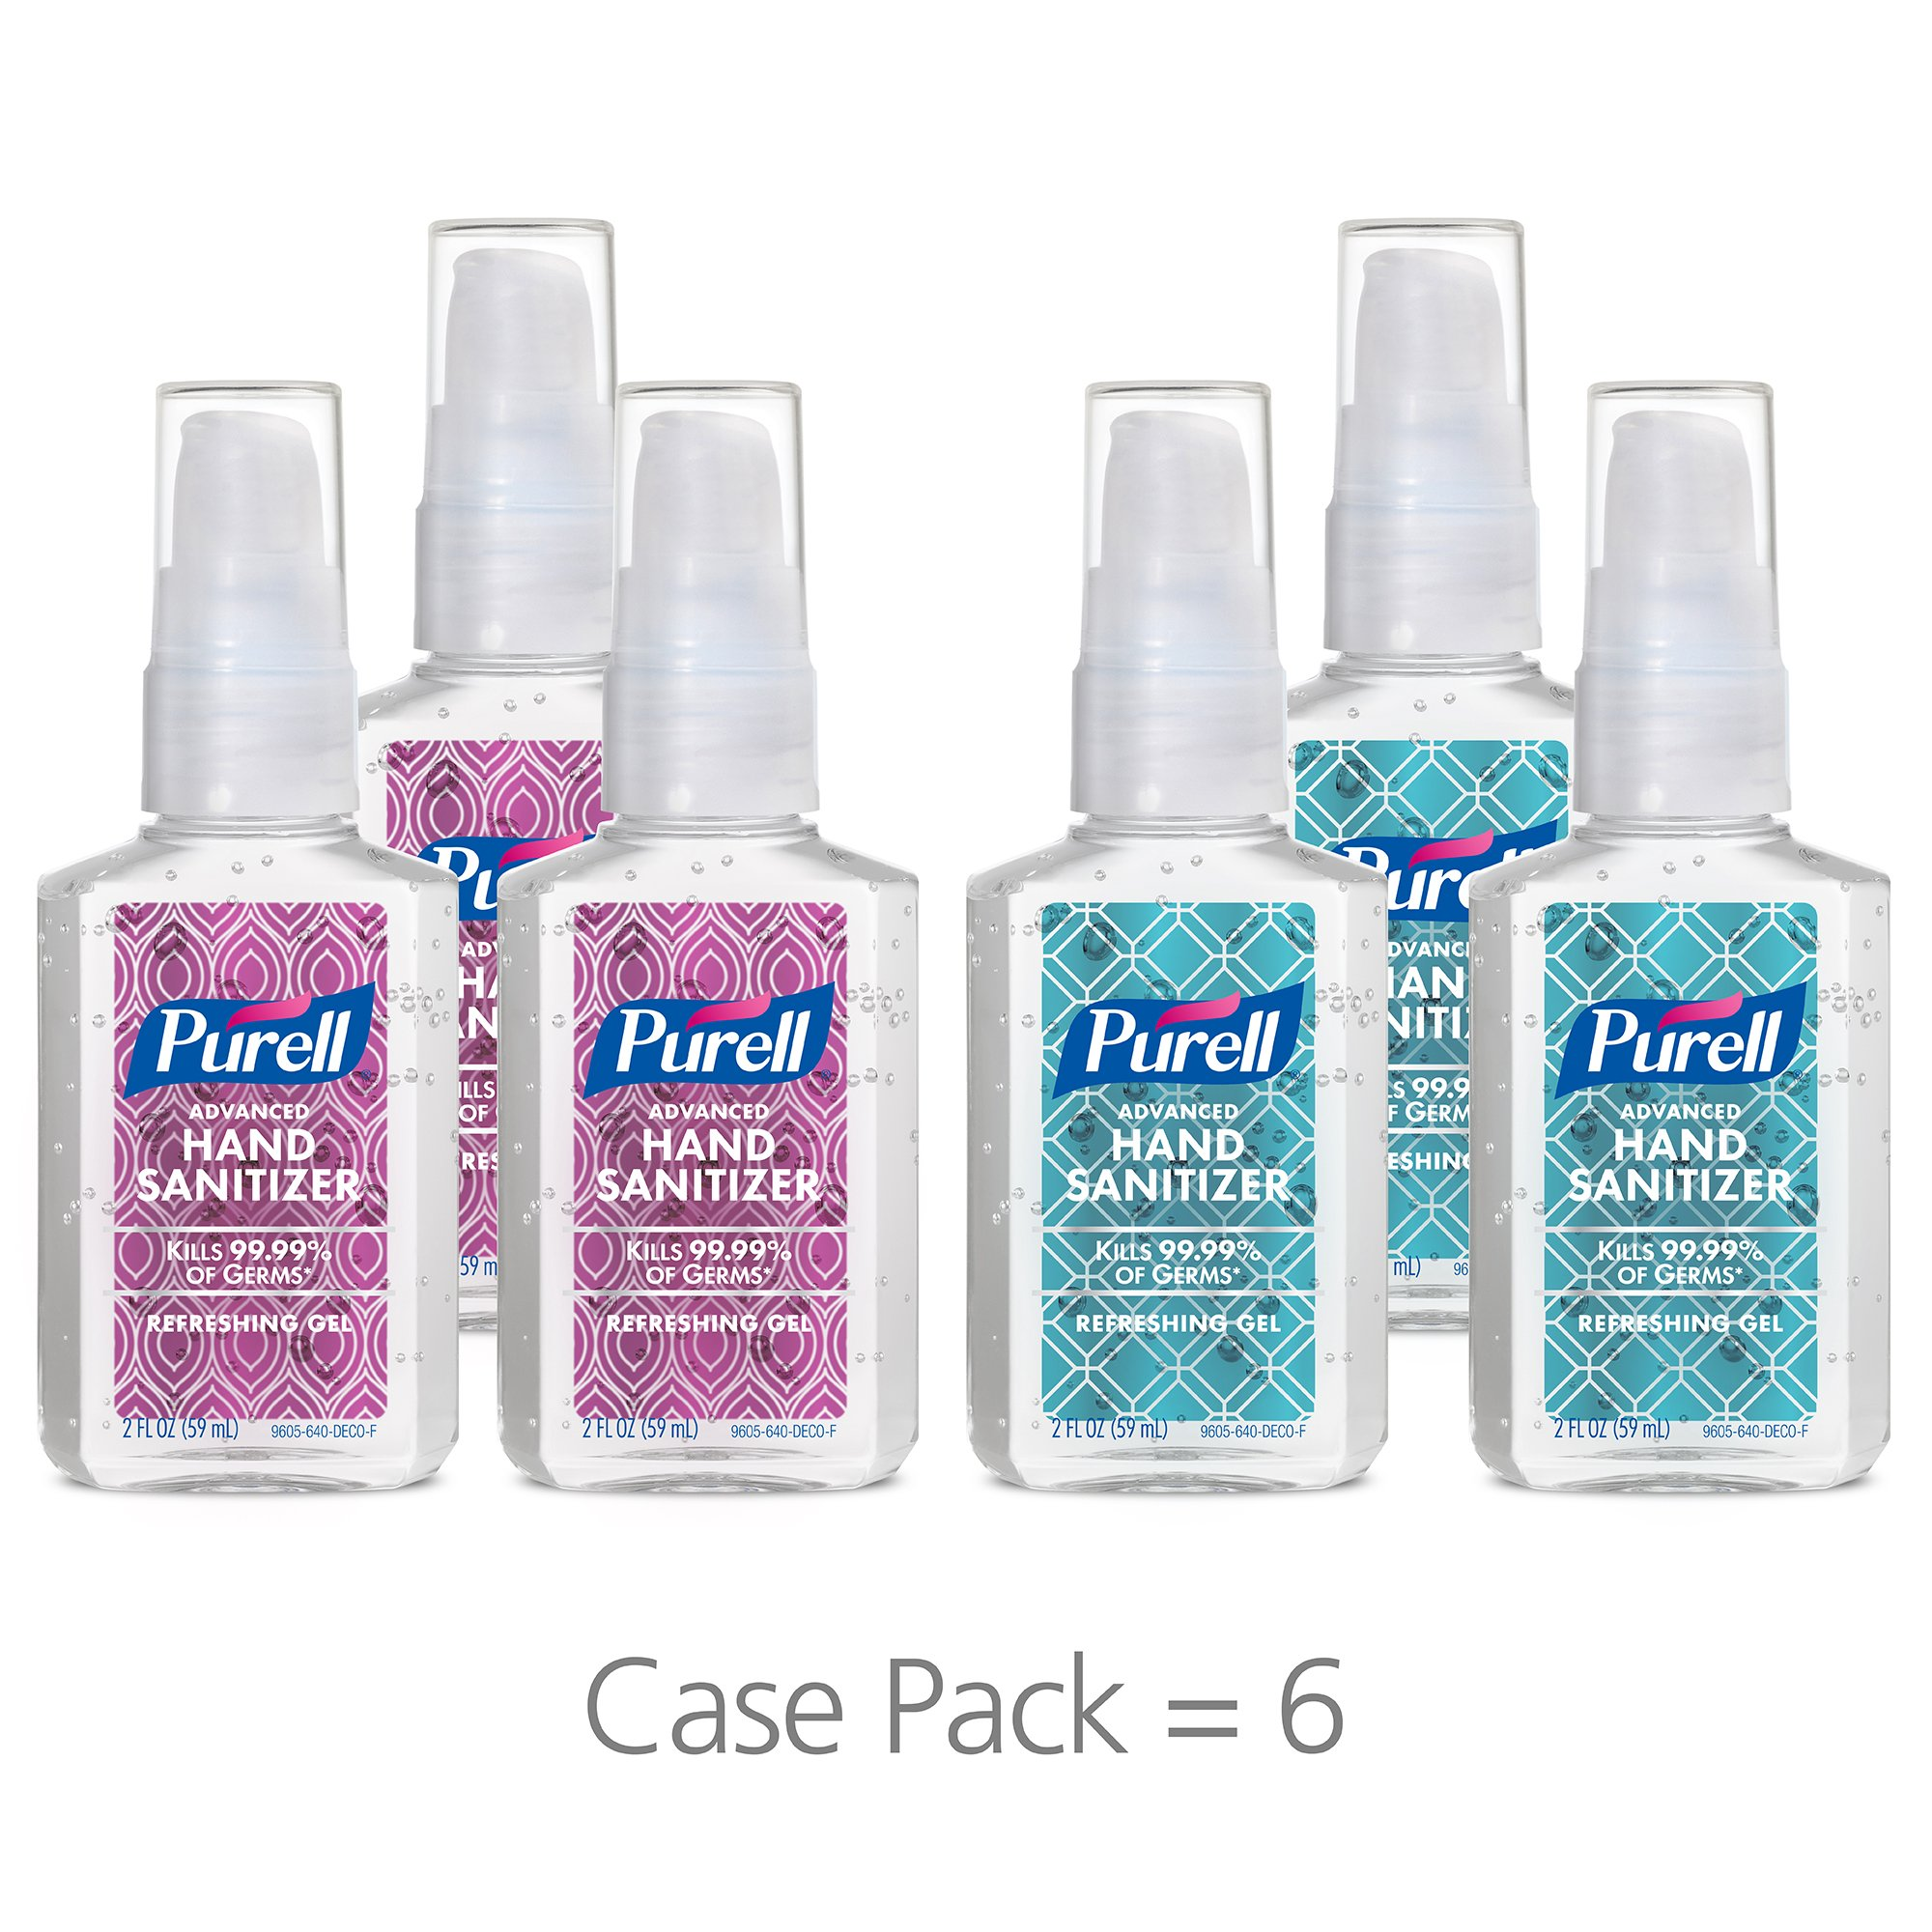 PURELL Advanced Hand Sanitizer Gel - Metallic Foil Decorative Collection, 2 fl oz Portable Pump Bottle (Pack of 6) 9605-04-ECDECO